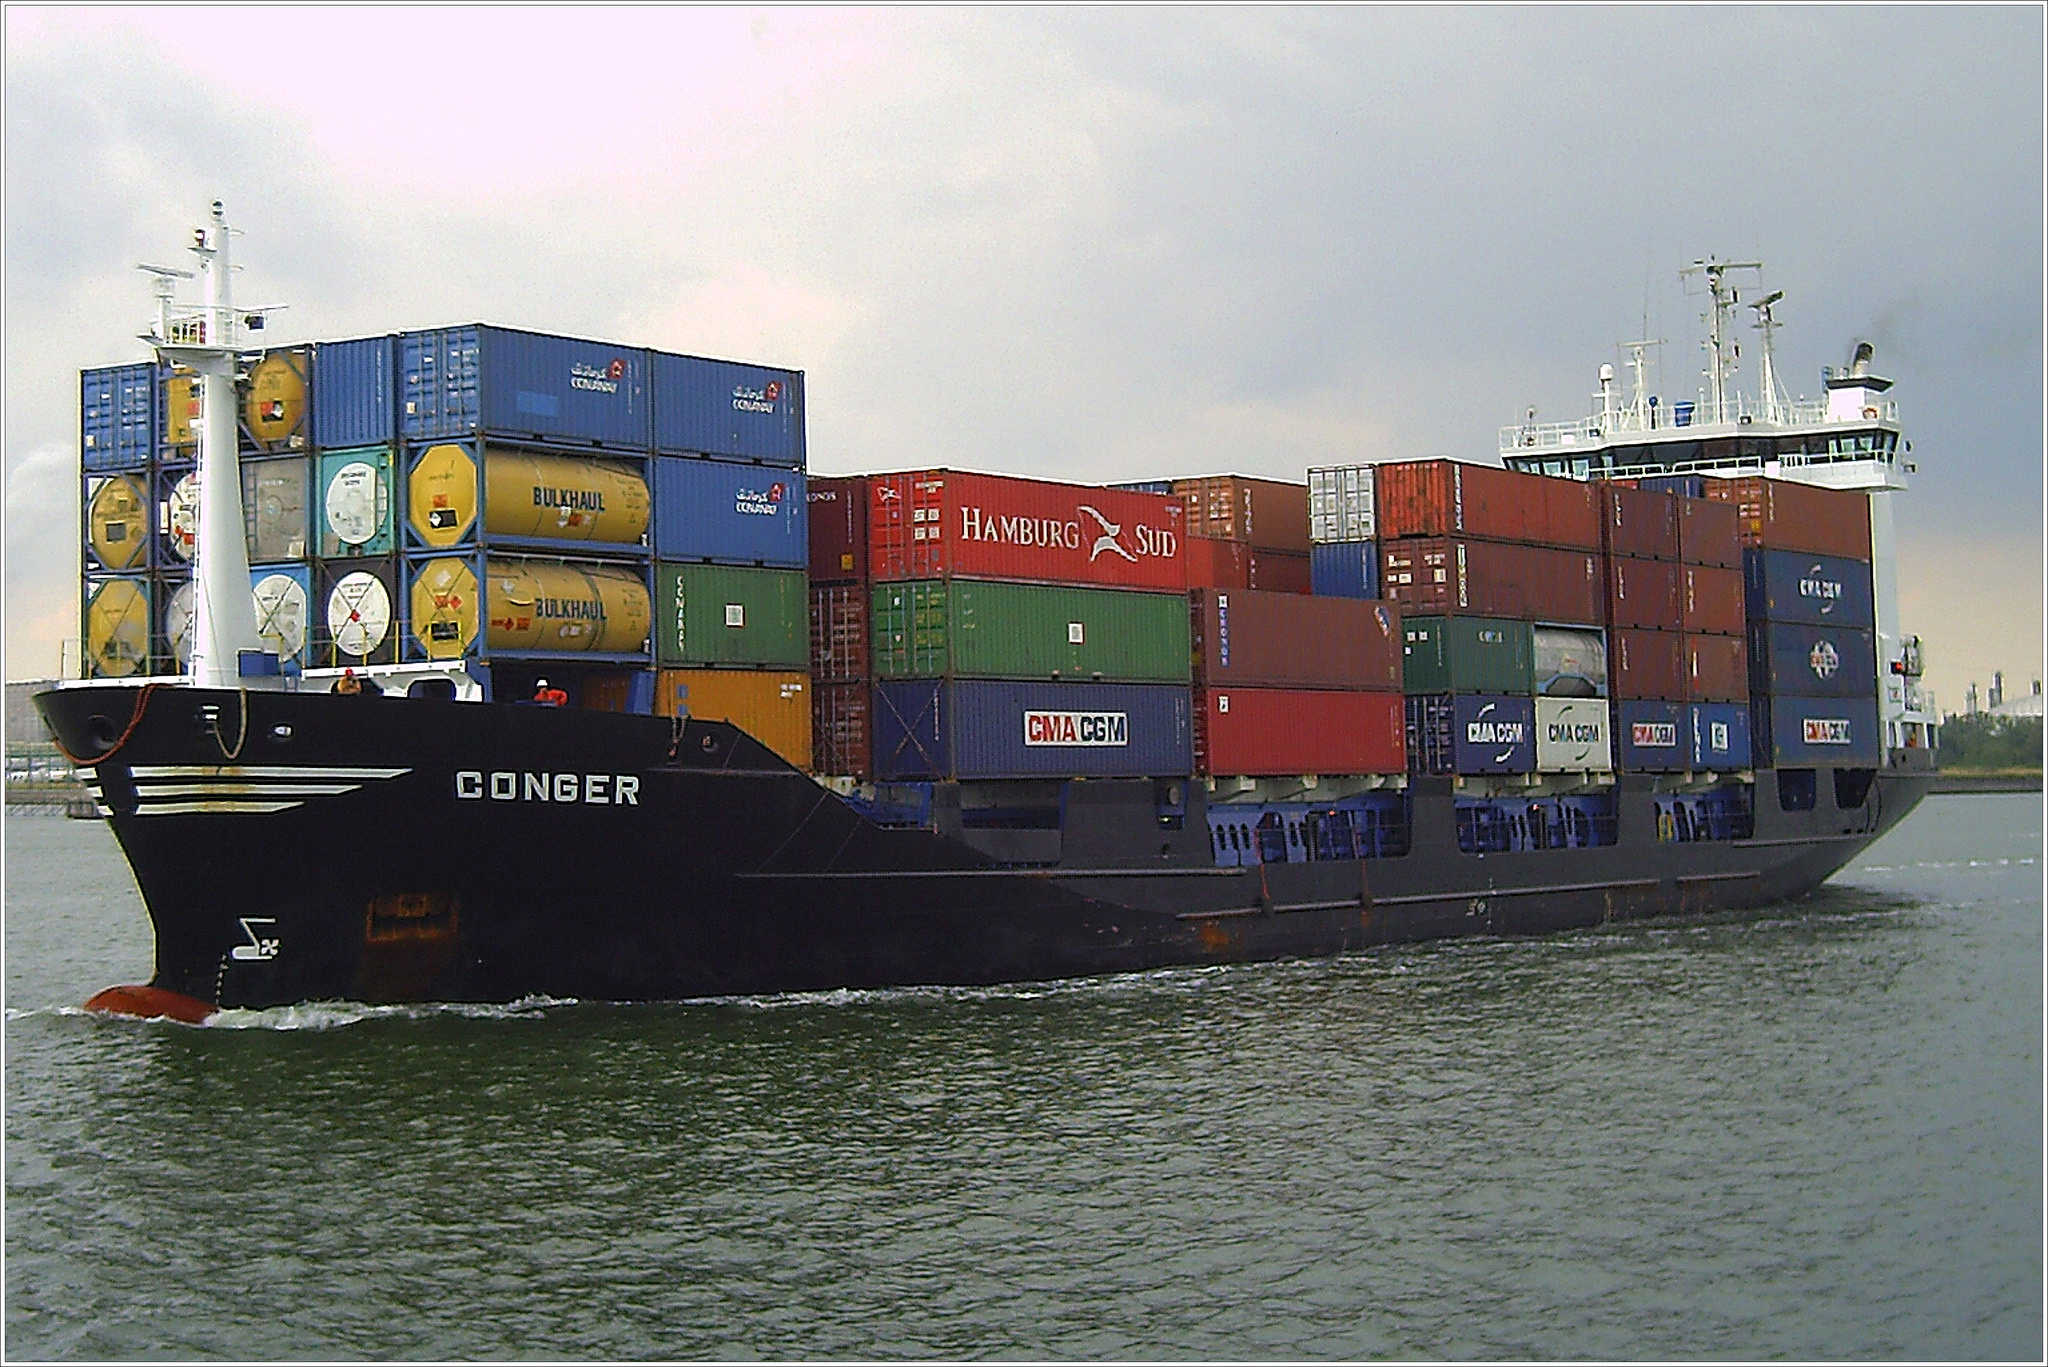 Commercial Side of Container Shipping Industry